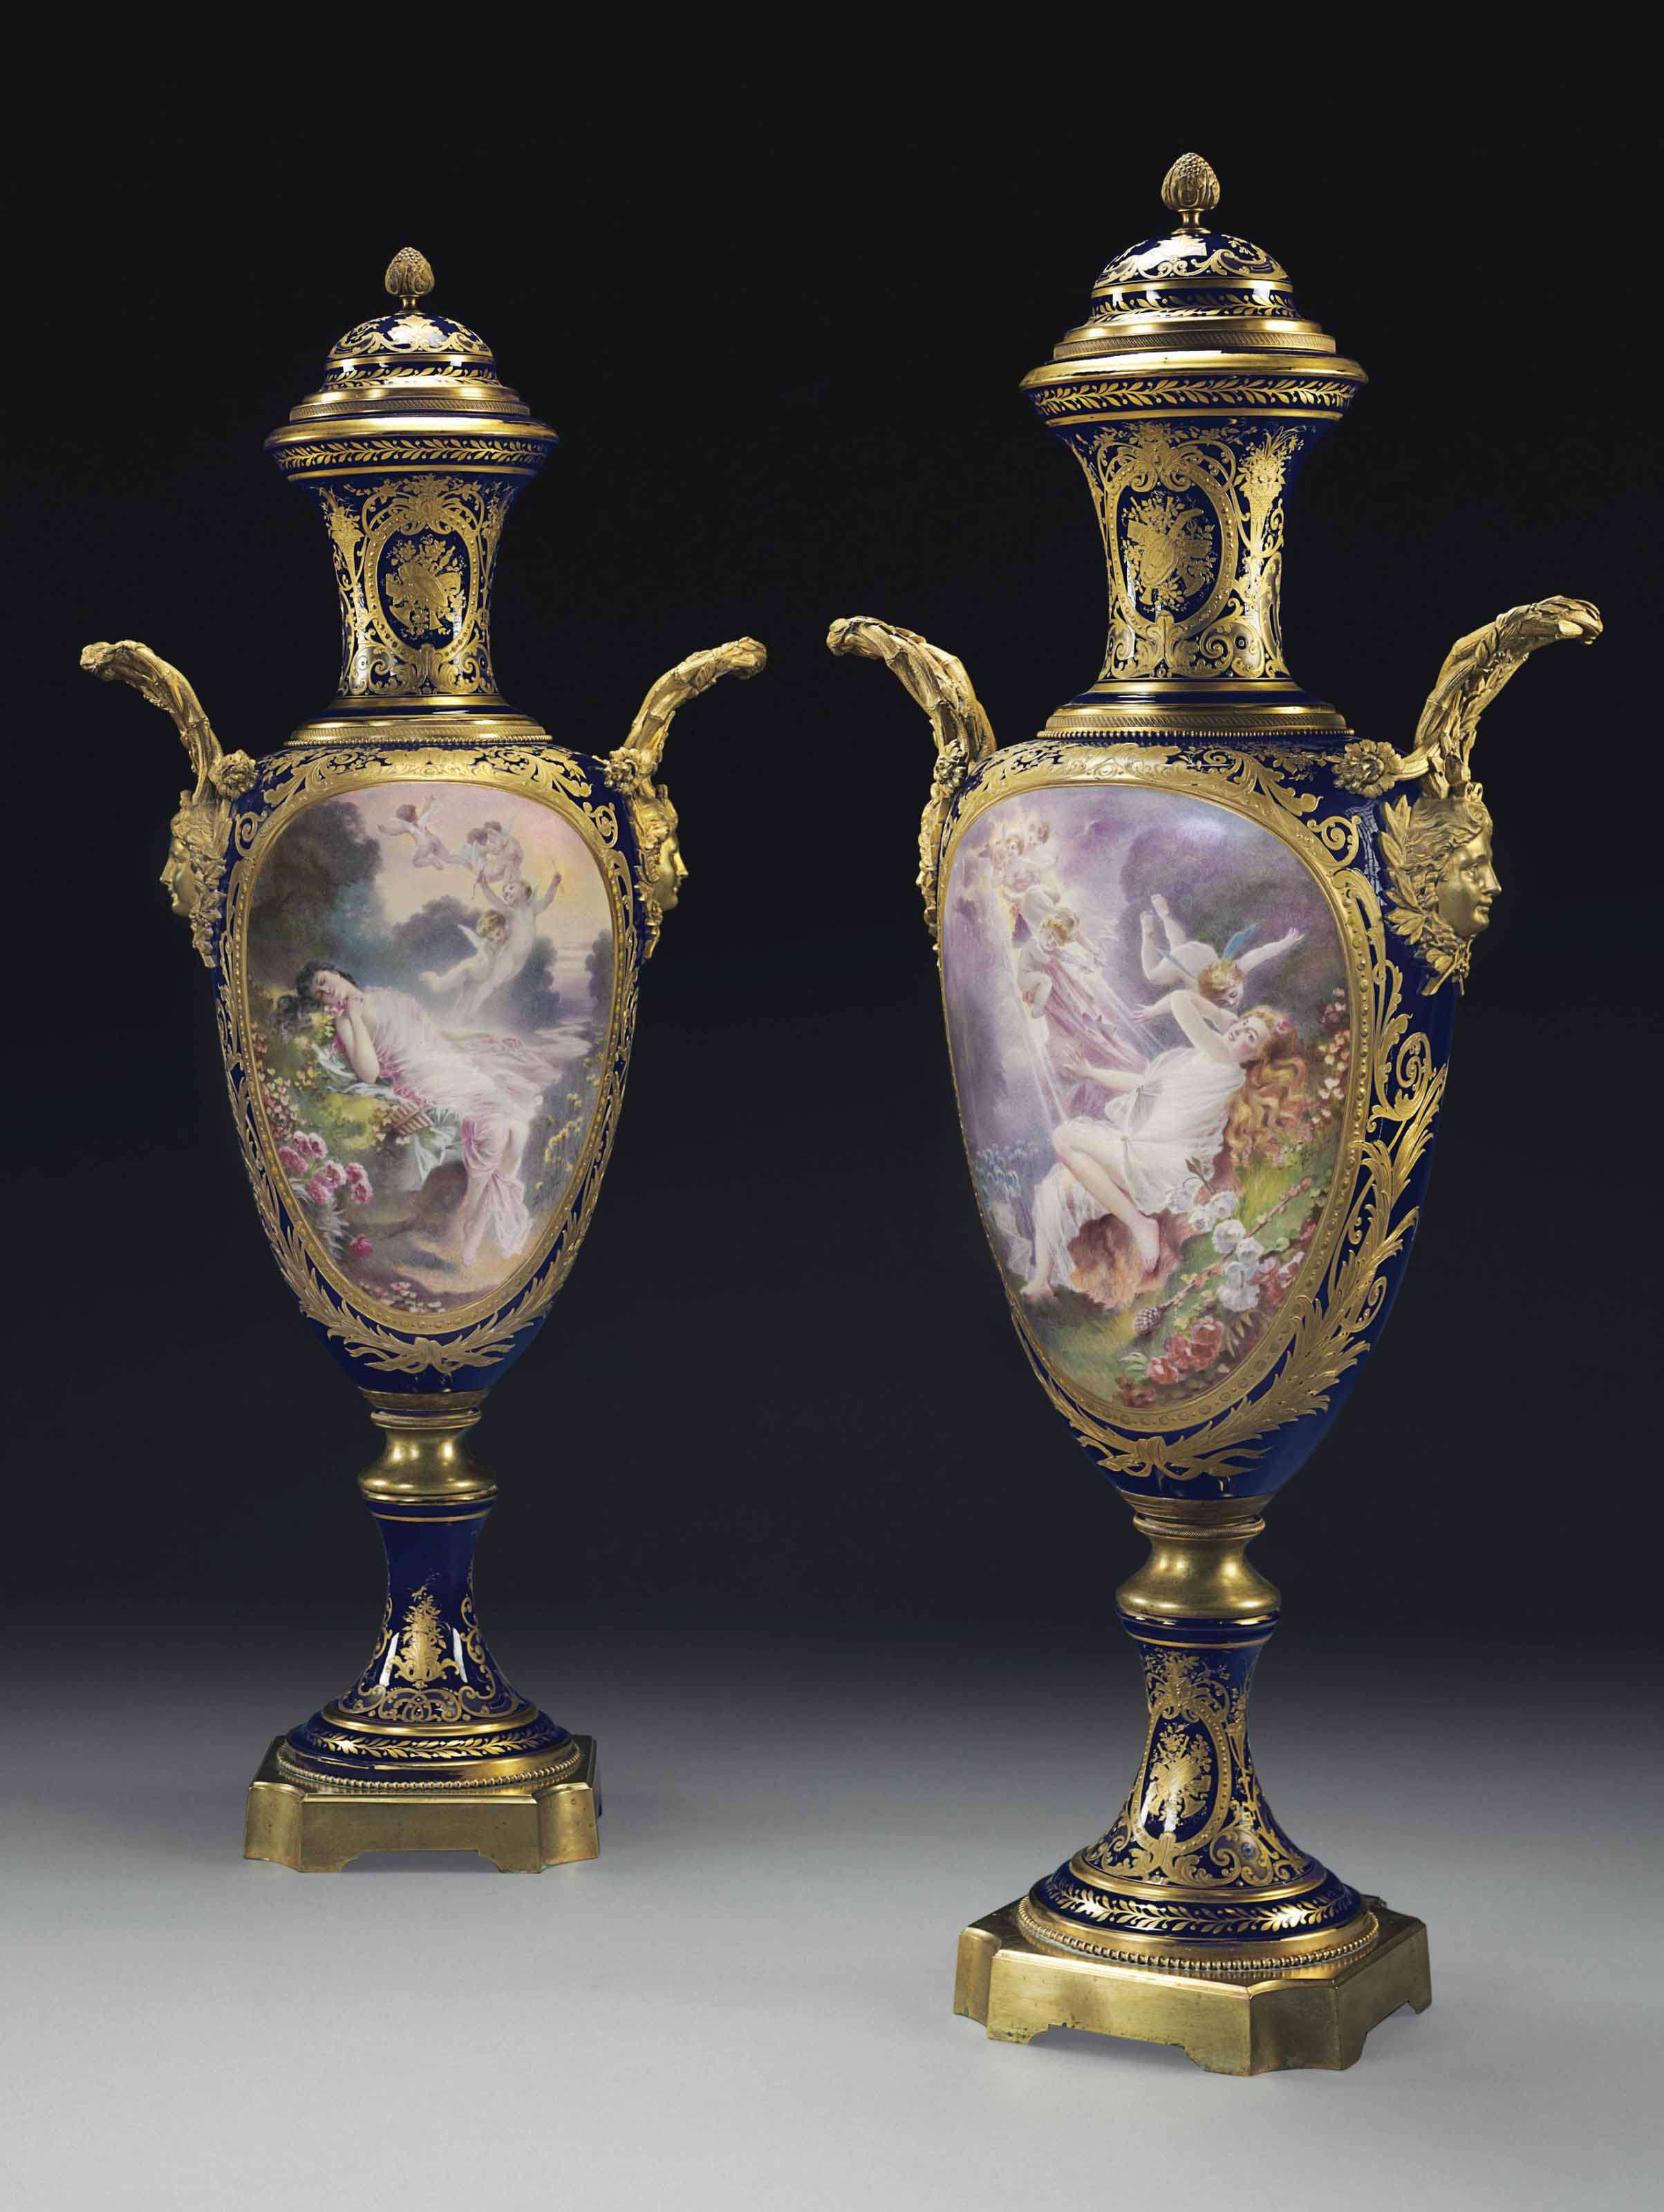 A MONUMENTAL PAIR OF ORMOLU-MOUNTED SEVRES STYLE PORCELAIN COBALT-BLUE GROUND VASES AND COVERS